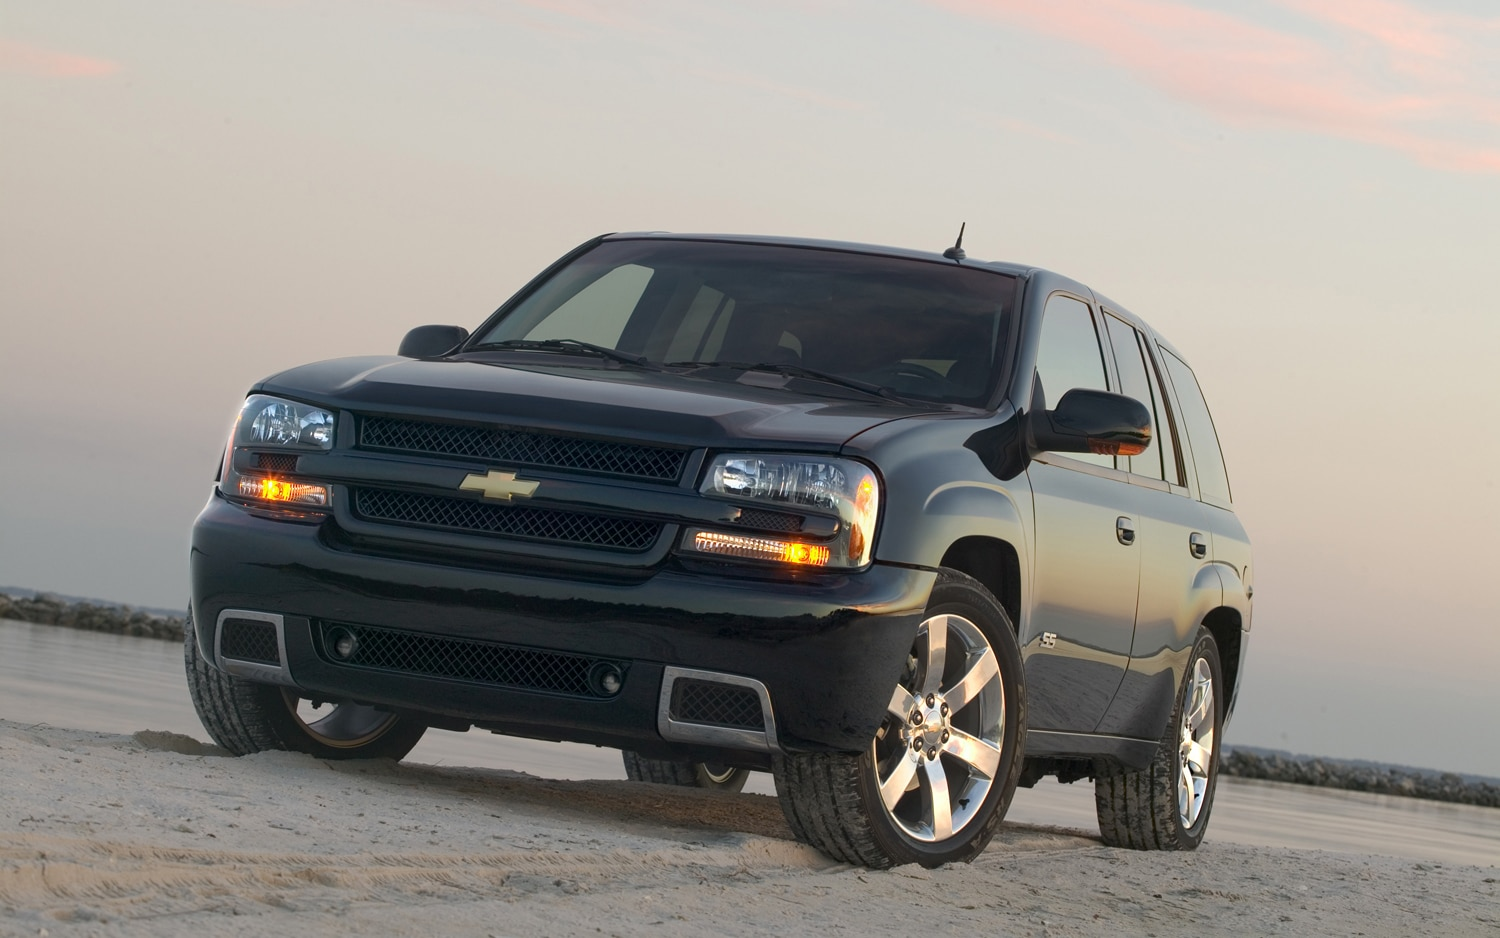 2006 Chevrolet Trailblazer SS Front View1